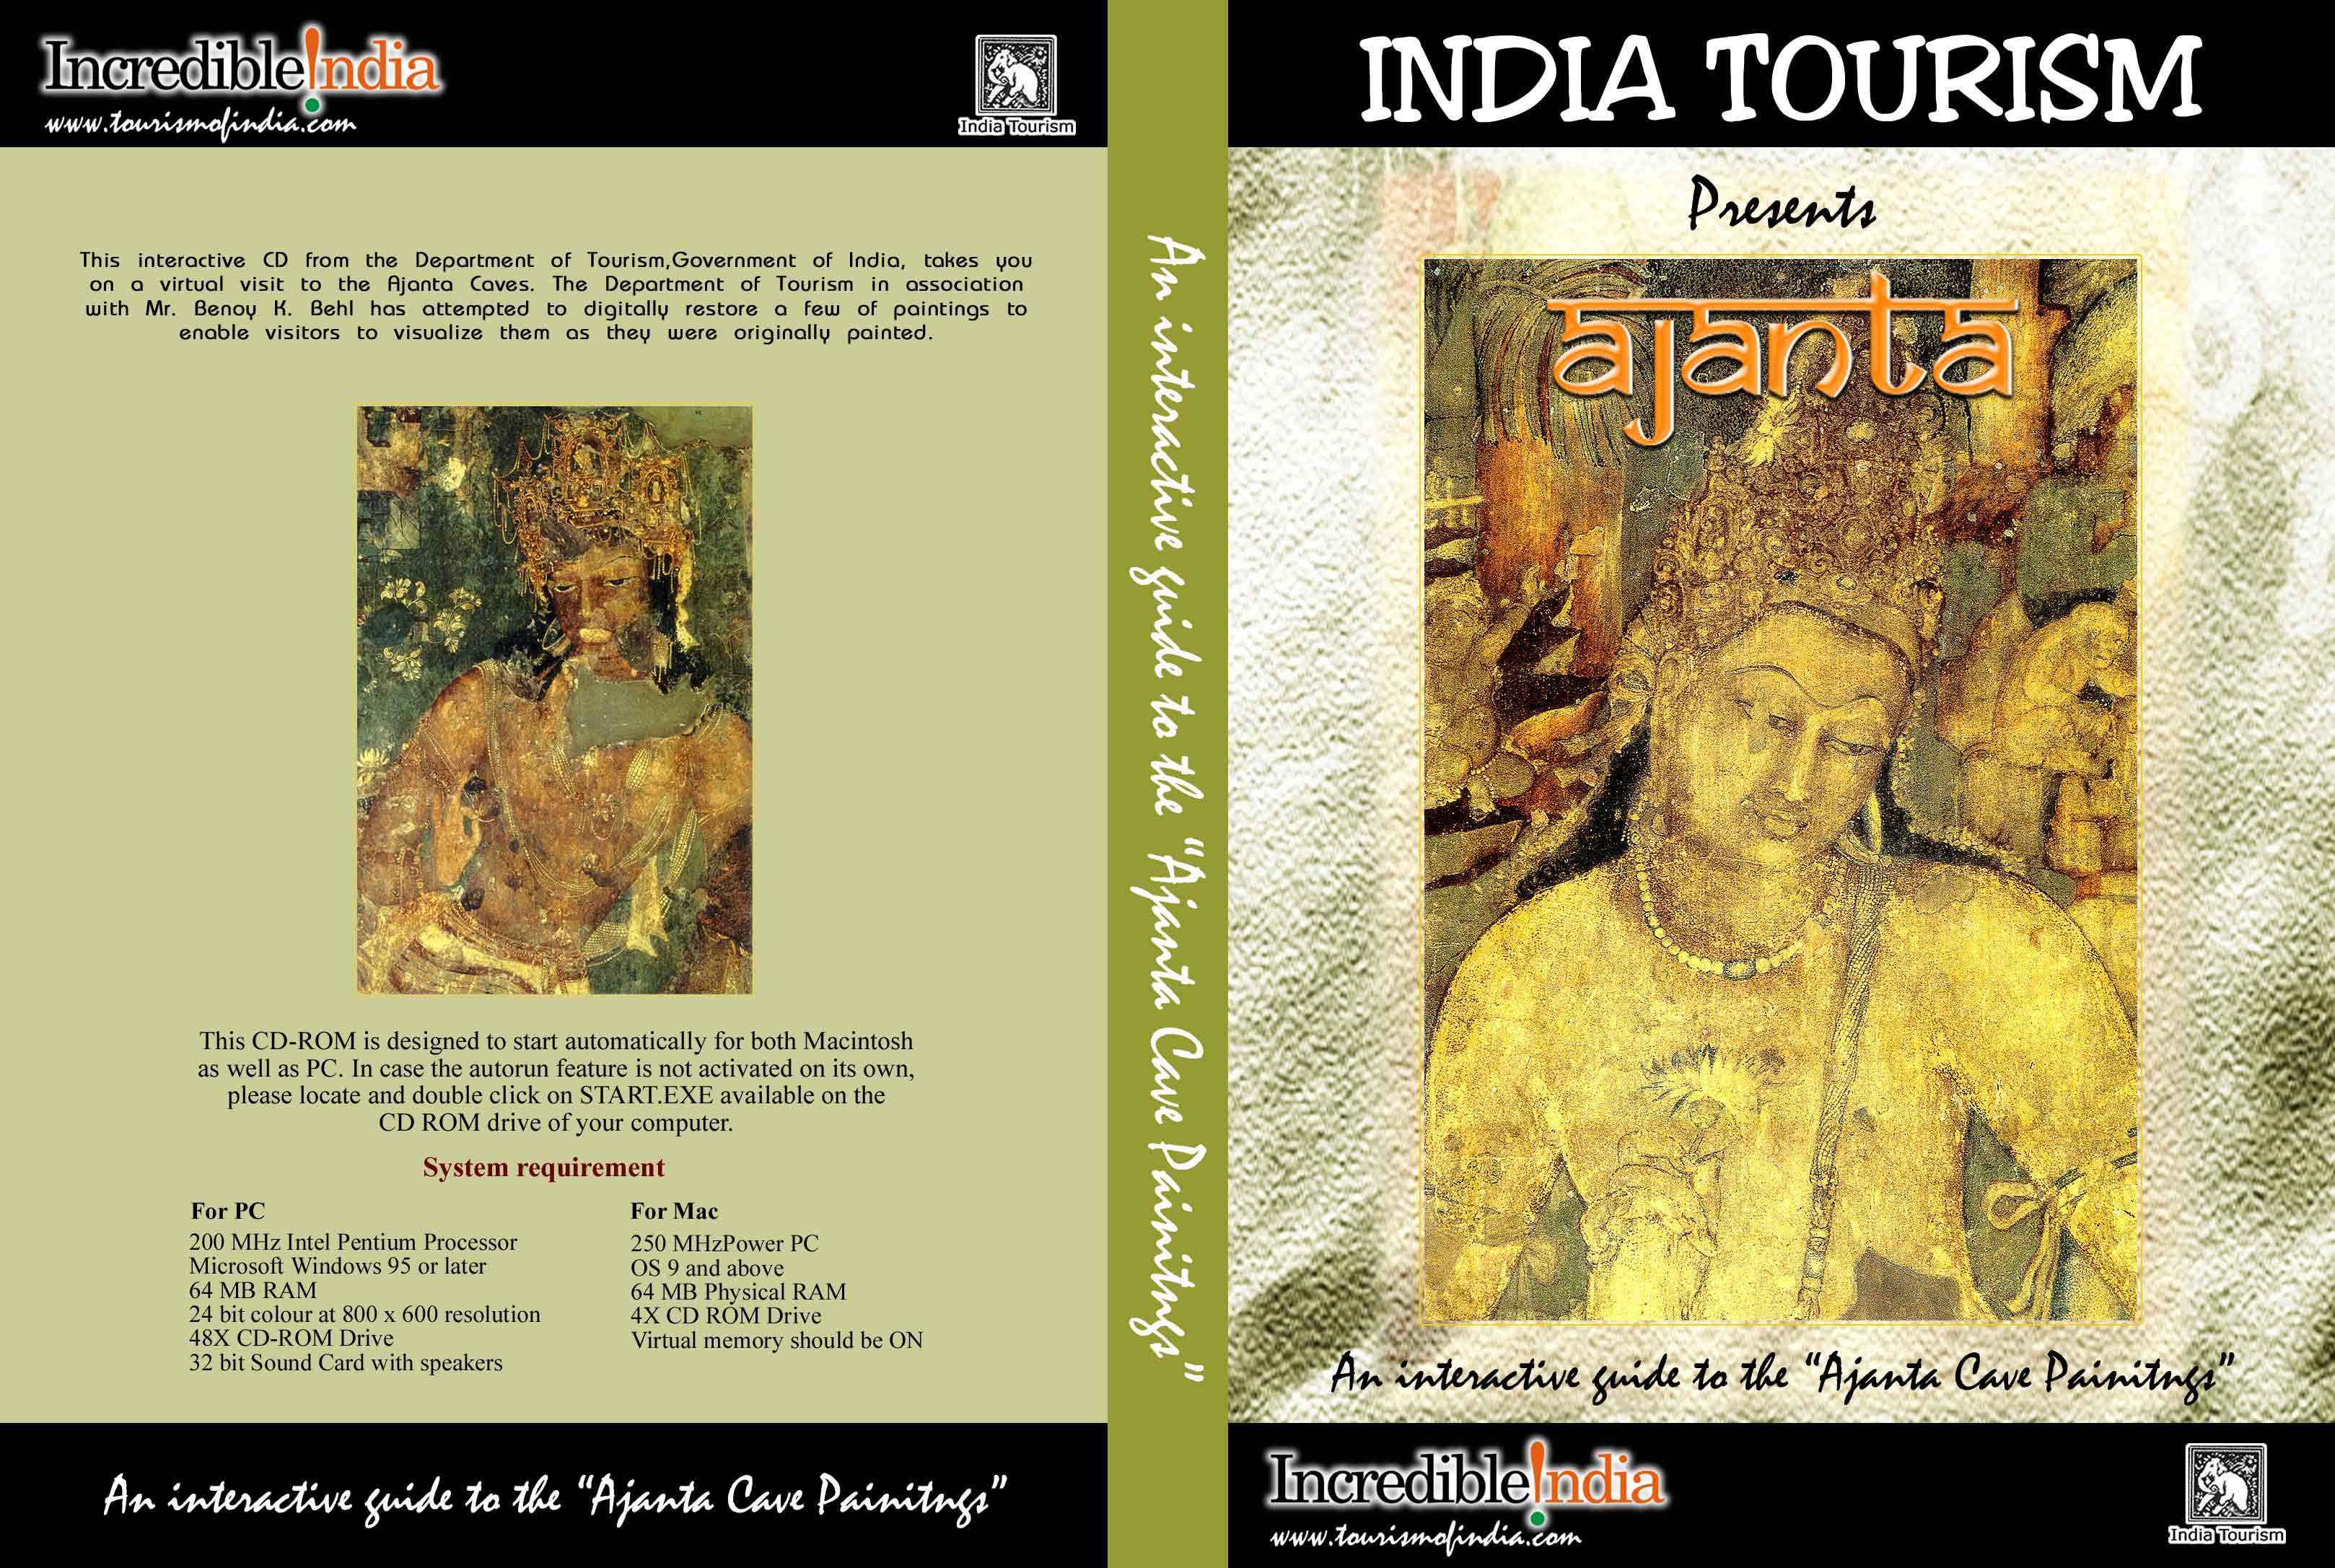 the Department of Tourism Govt of India for the virtual restoration